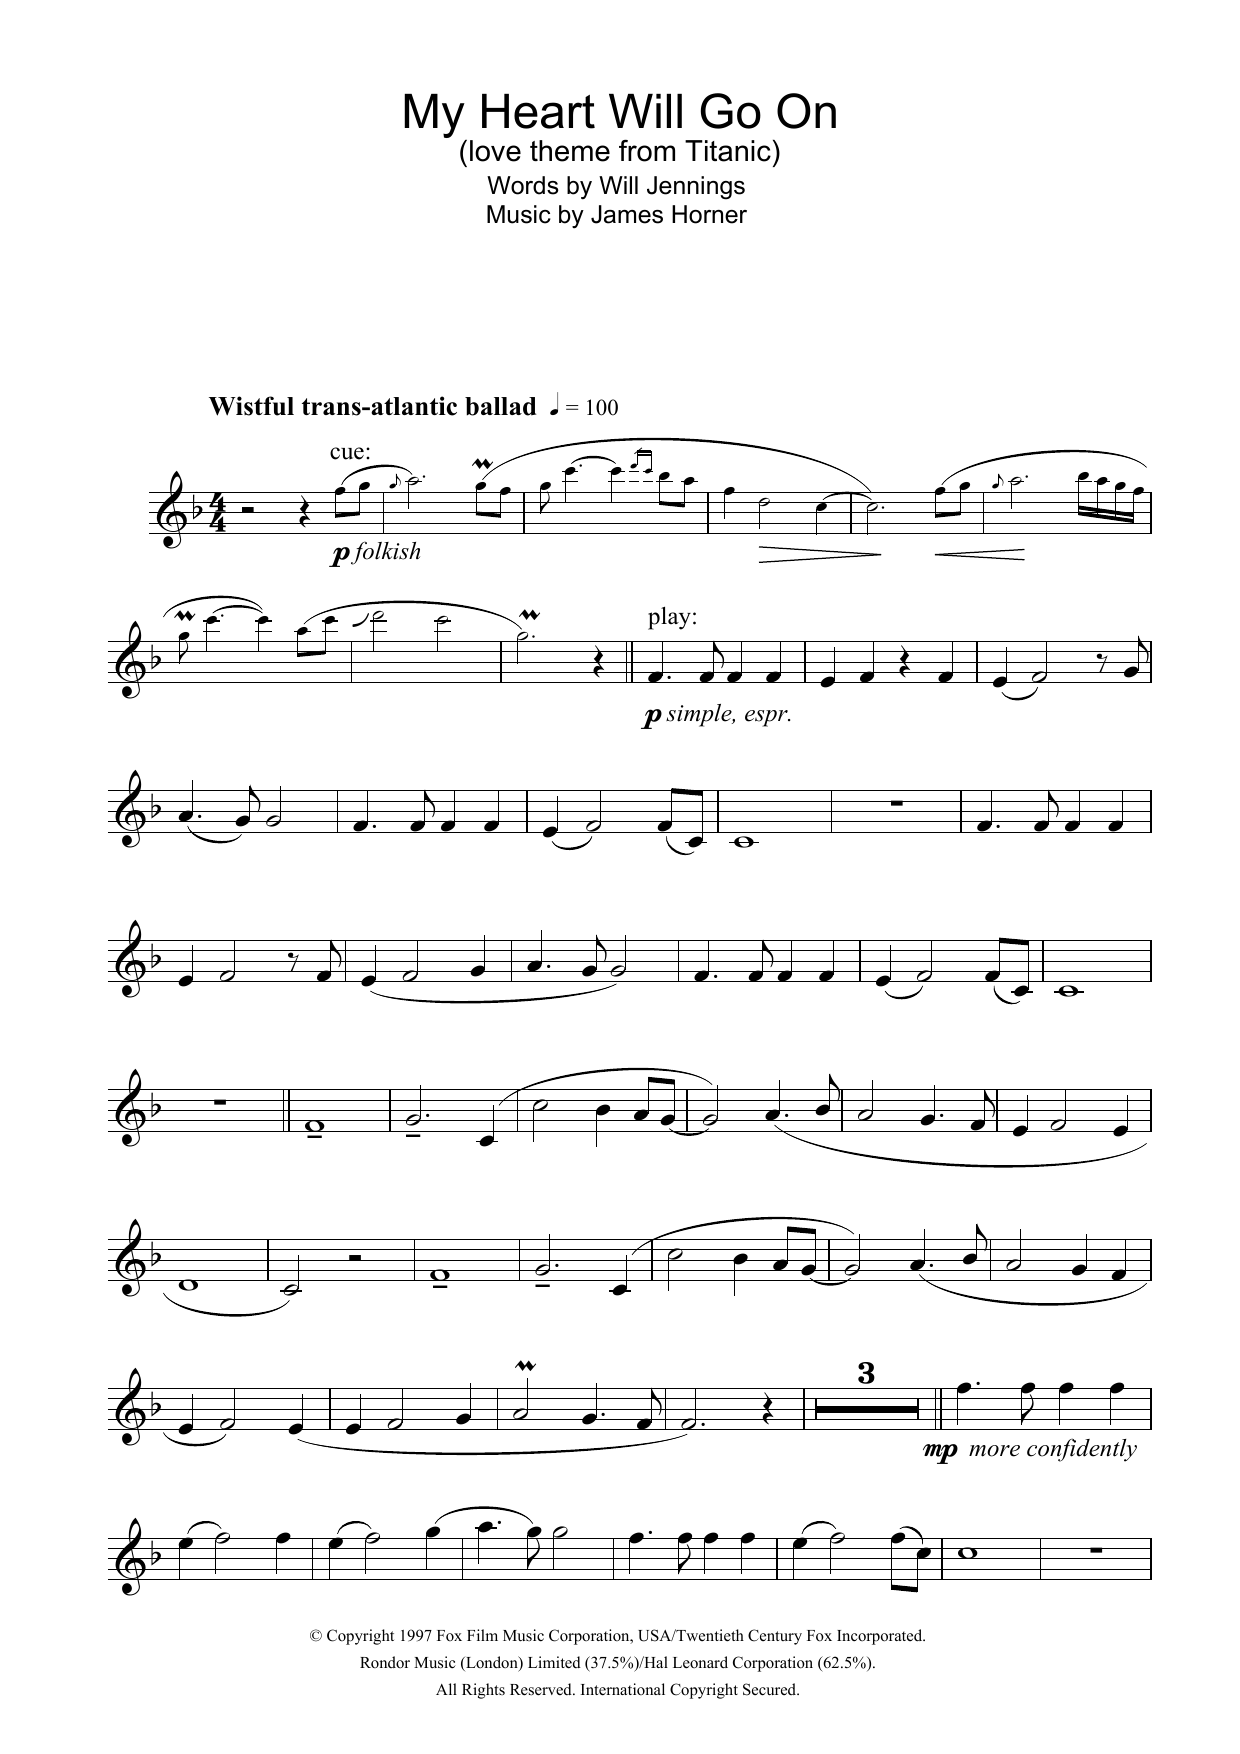 Violin violin chords my heart will go on : Sheet Music Digital Files To Print - Licensed James Horner Digital ...